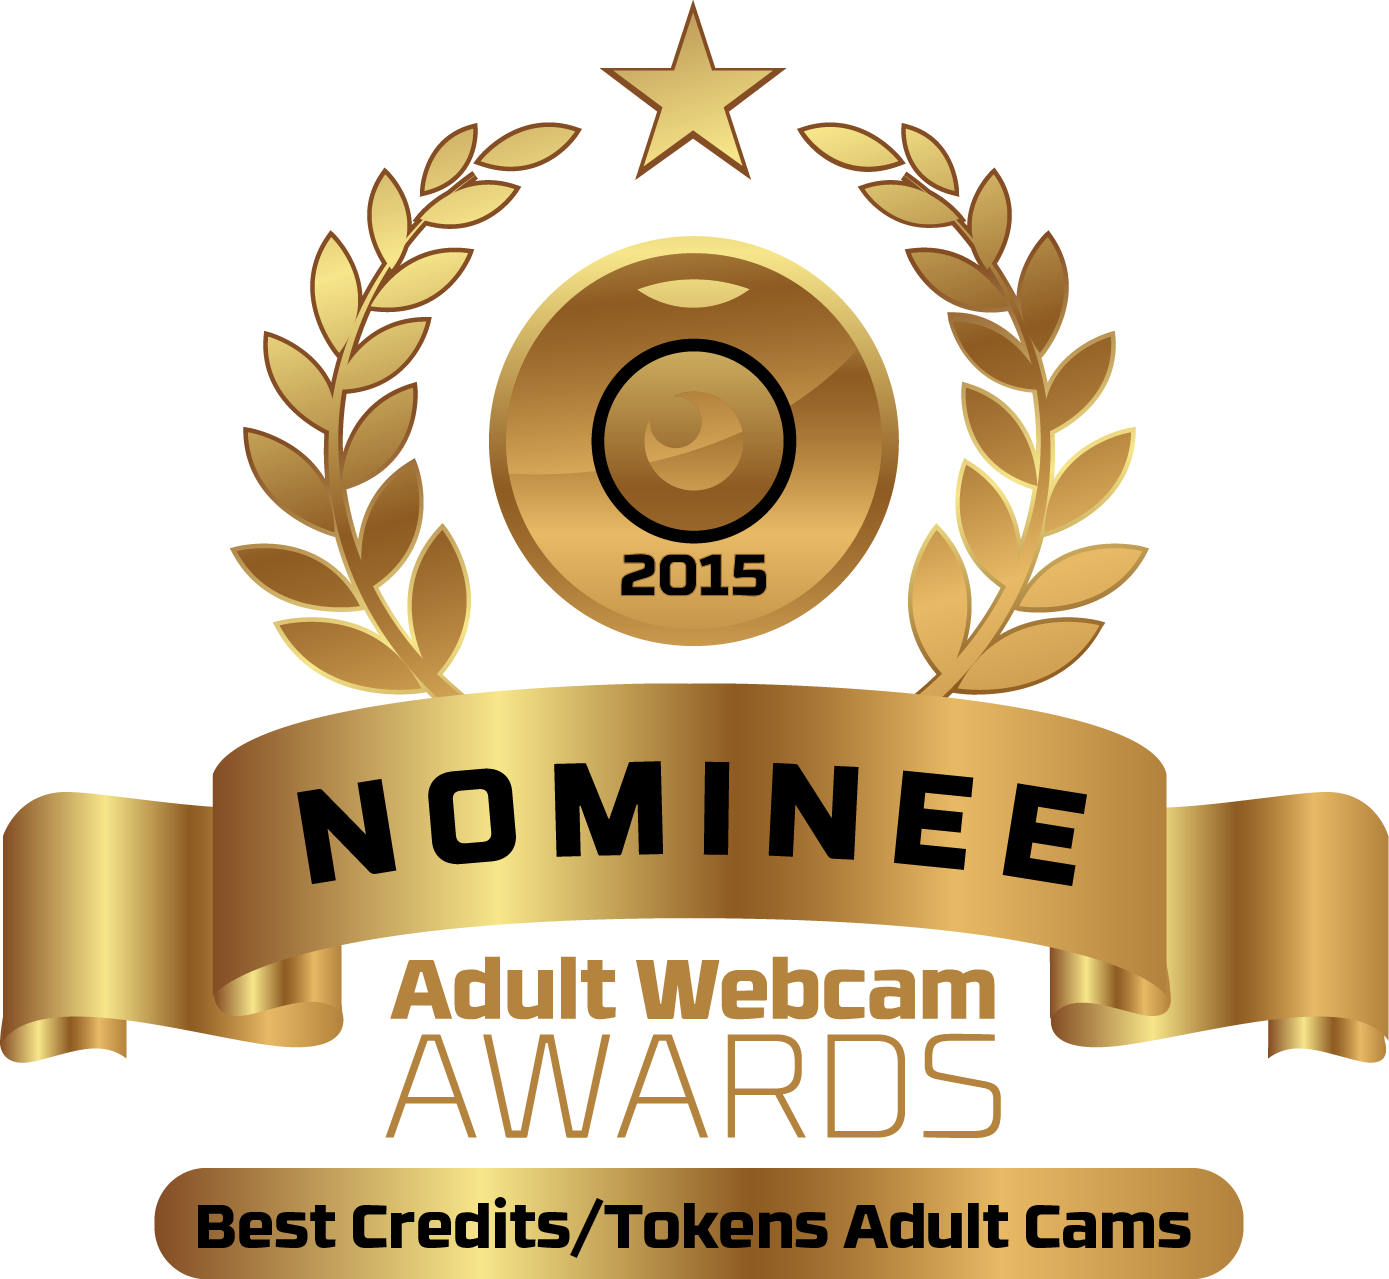 Best Credits Tokens Adult Cam Site Nominee